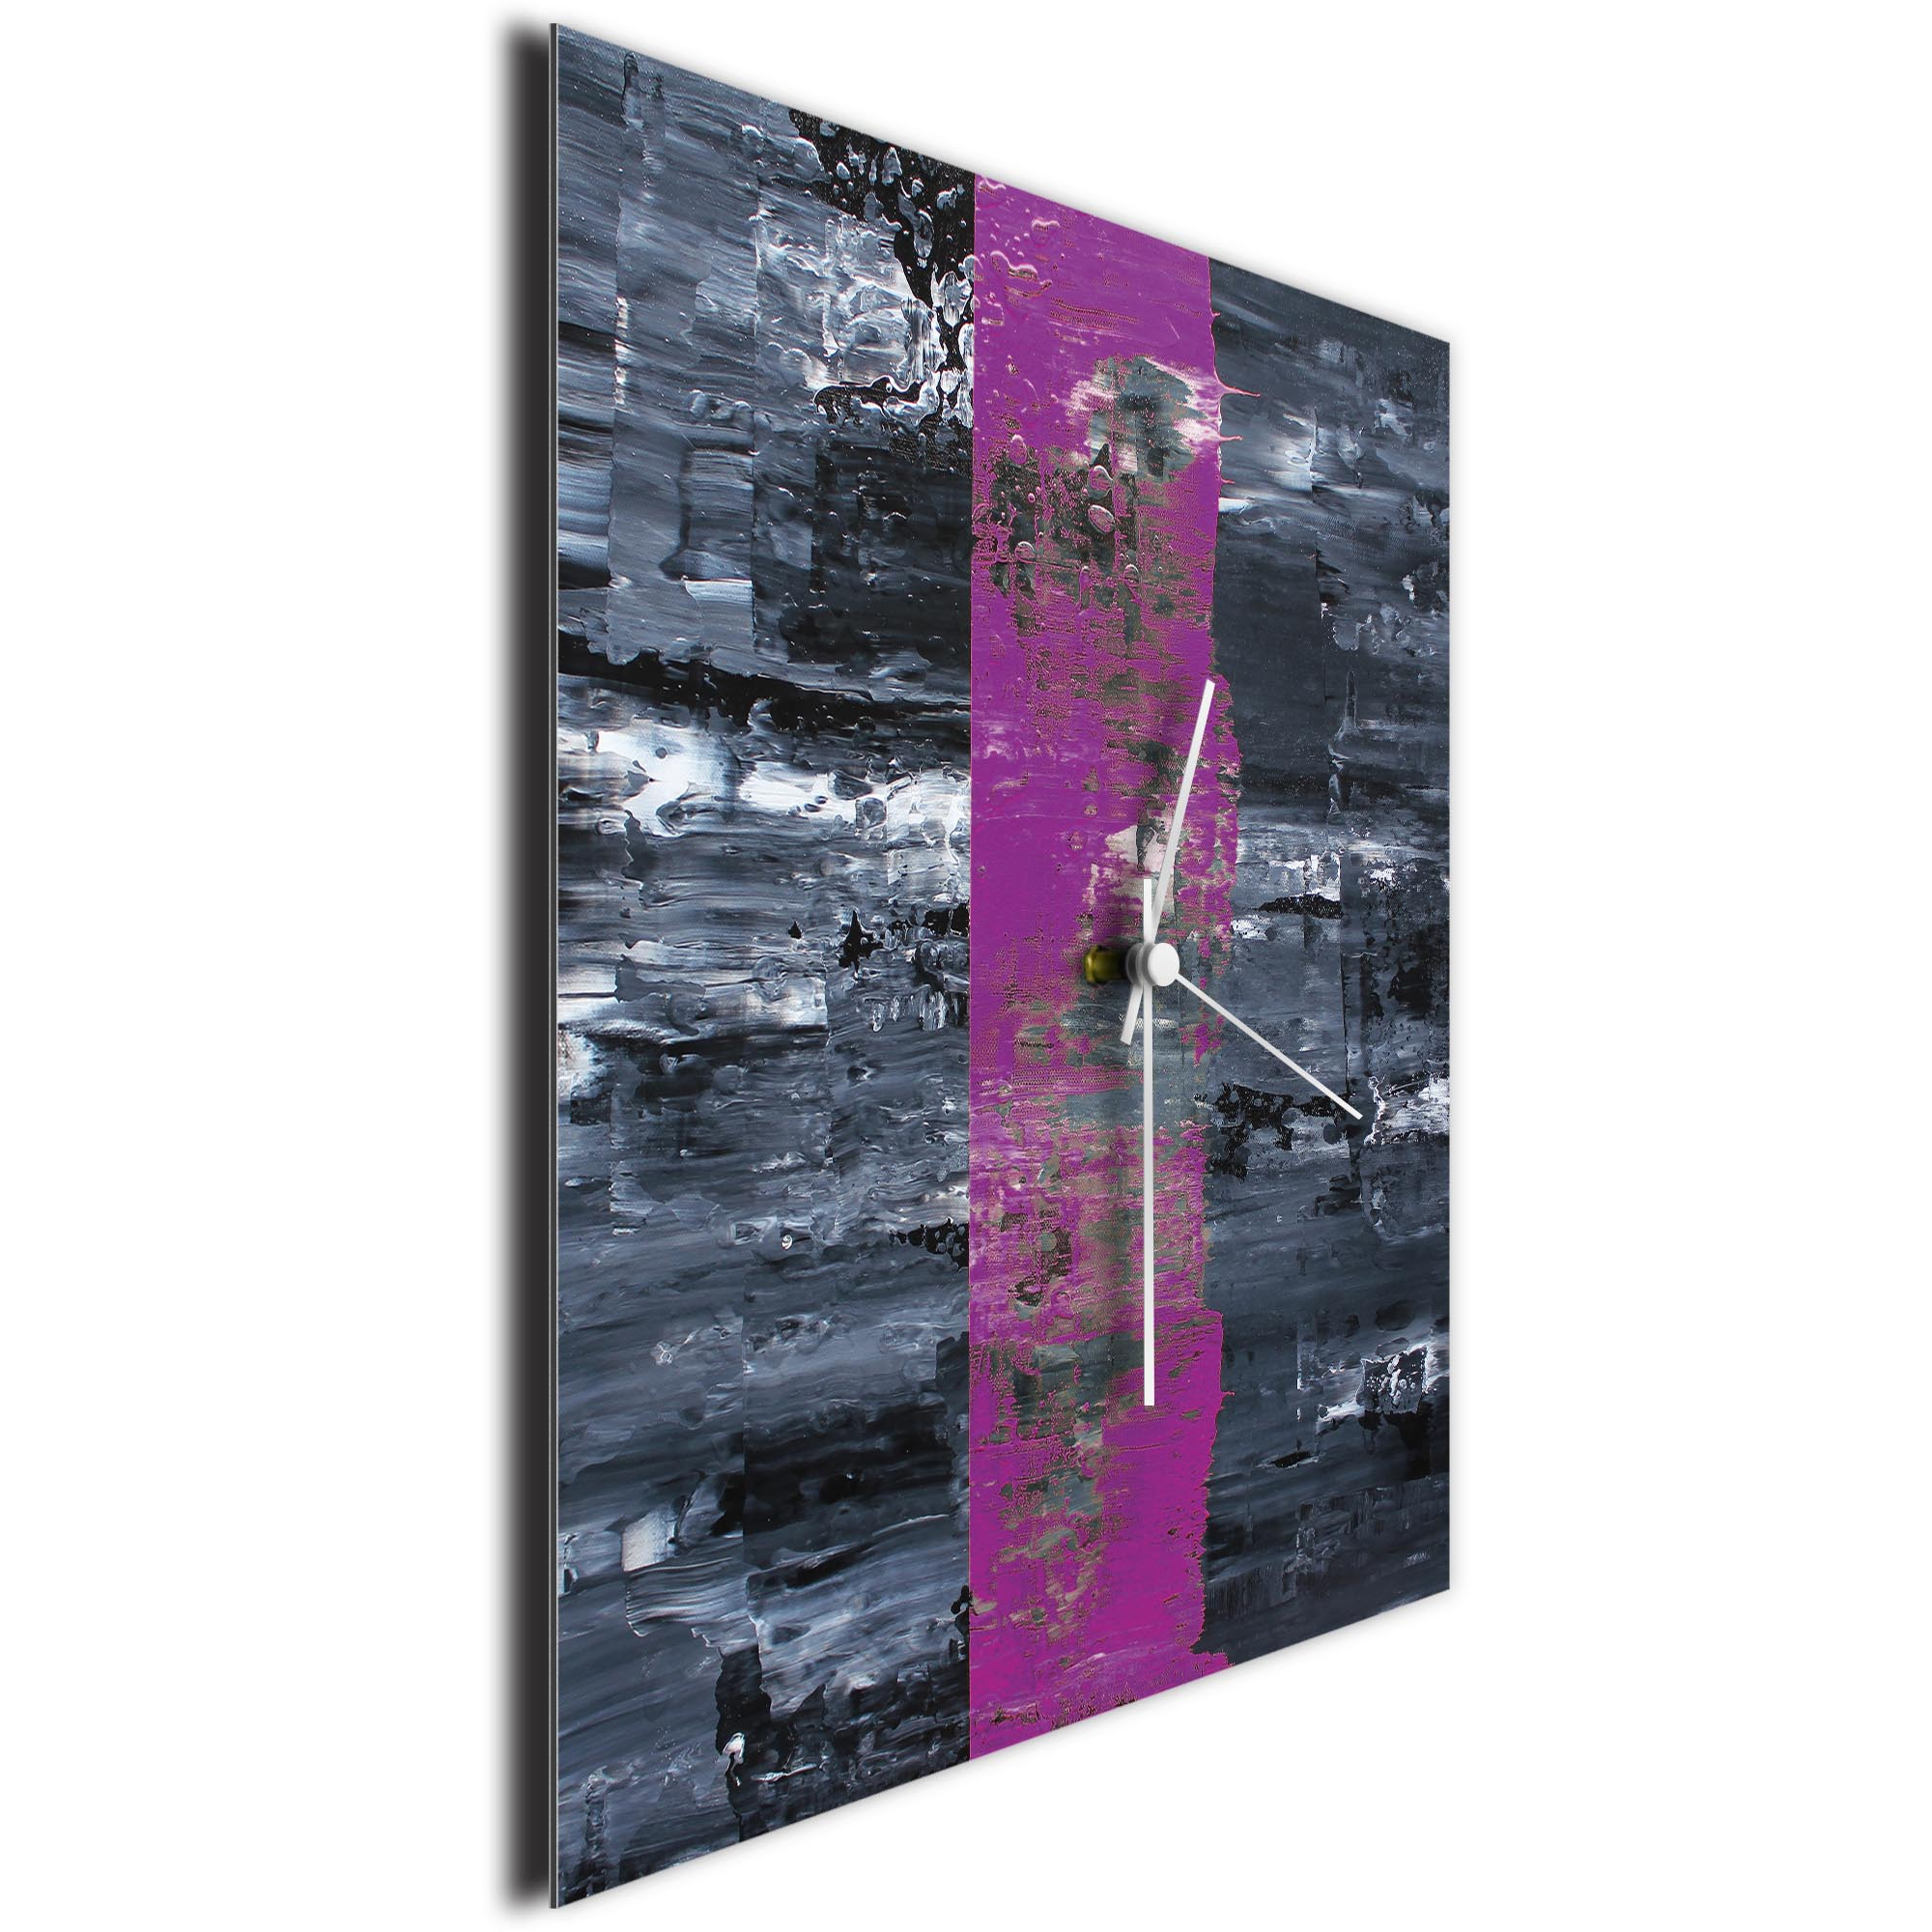 Purple Line Square Clock by Mendo Vasilevski - Urban Abstract Home Decor - Image 3